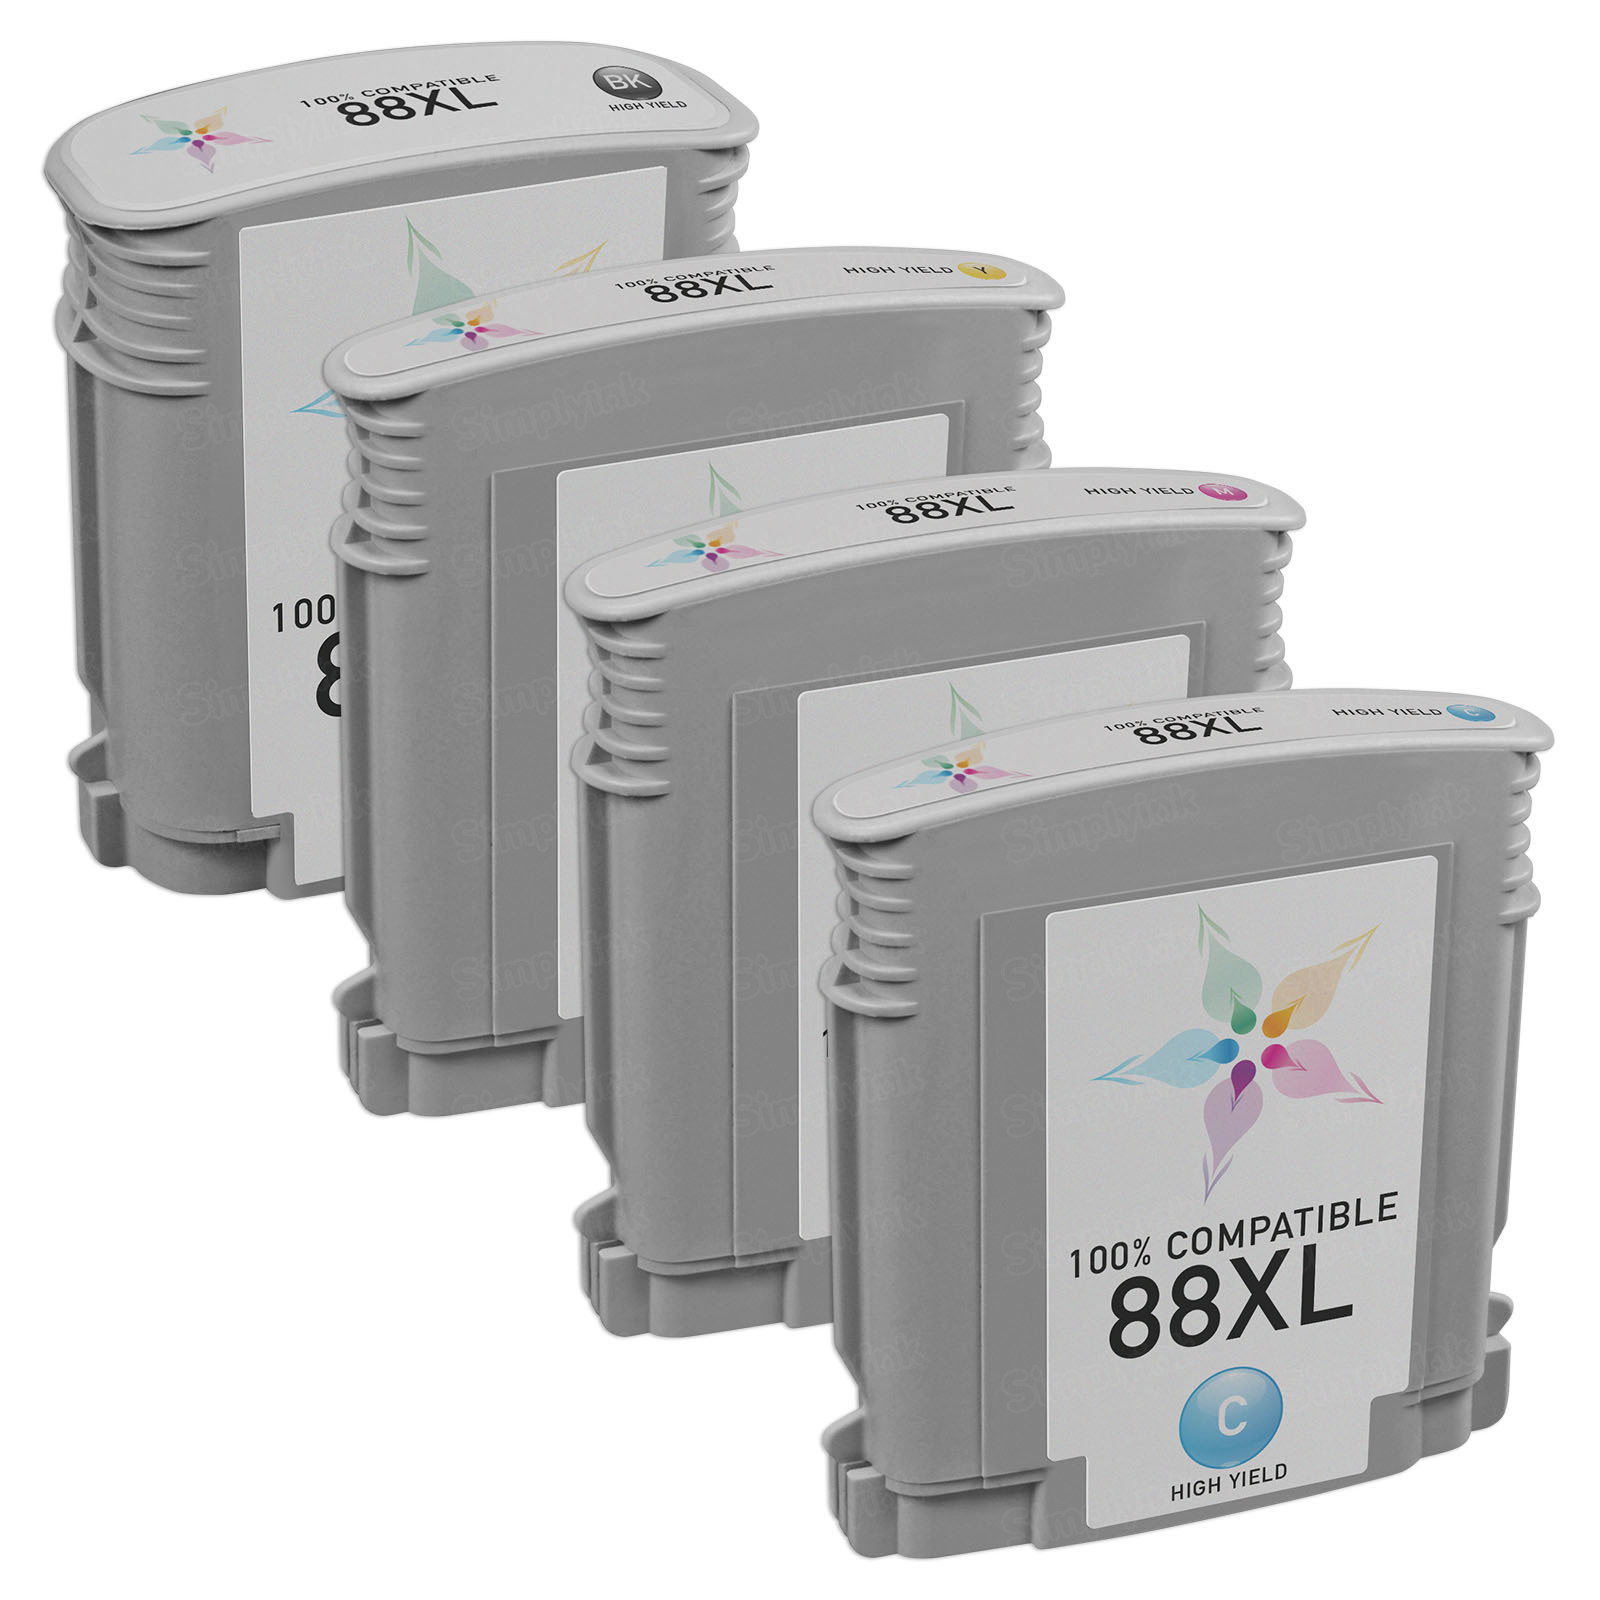 Remanufactured 88XL 4 Pack for HP